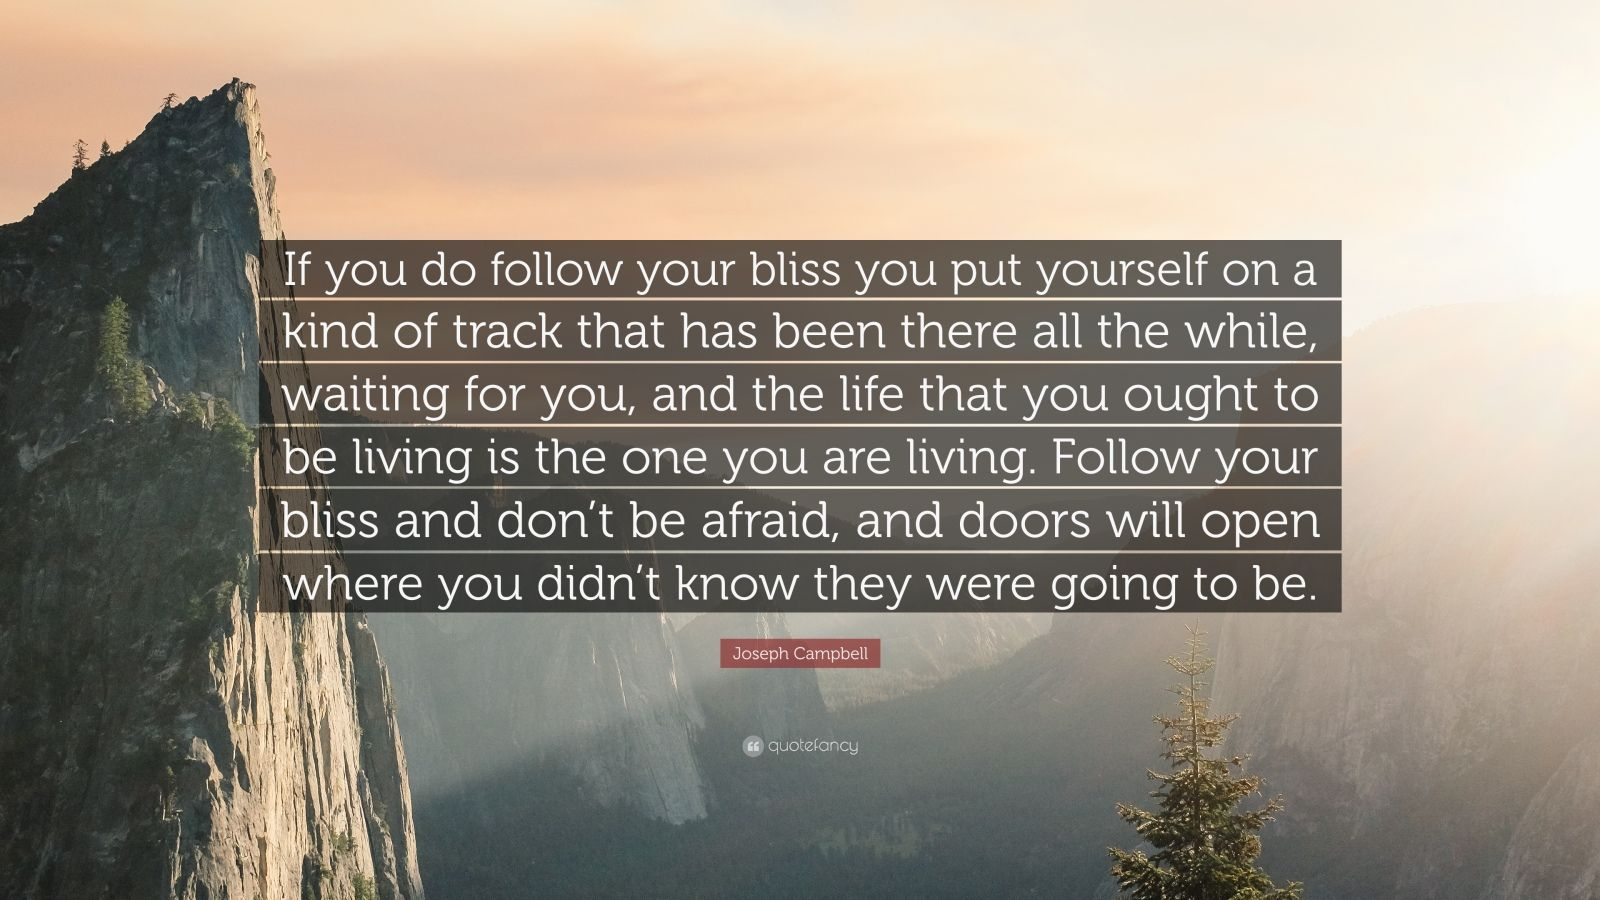 """Joseph Campbell Quote: """"If you do follow your bliss you put yourself on a kind of track that has been there all the while, waiting for you, and the life that you ought to be living is the one you are living. Follow your bliss and don't be afraid, and doors will open where you didn't know they were going to be."""""""